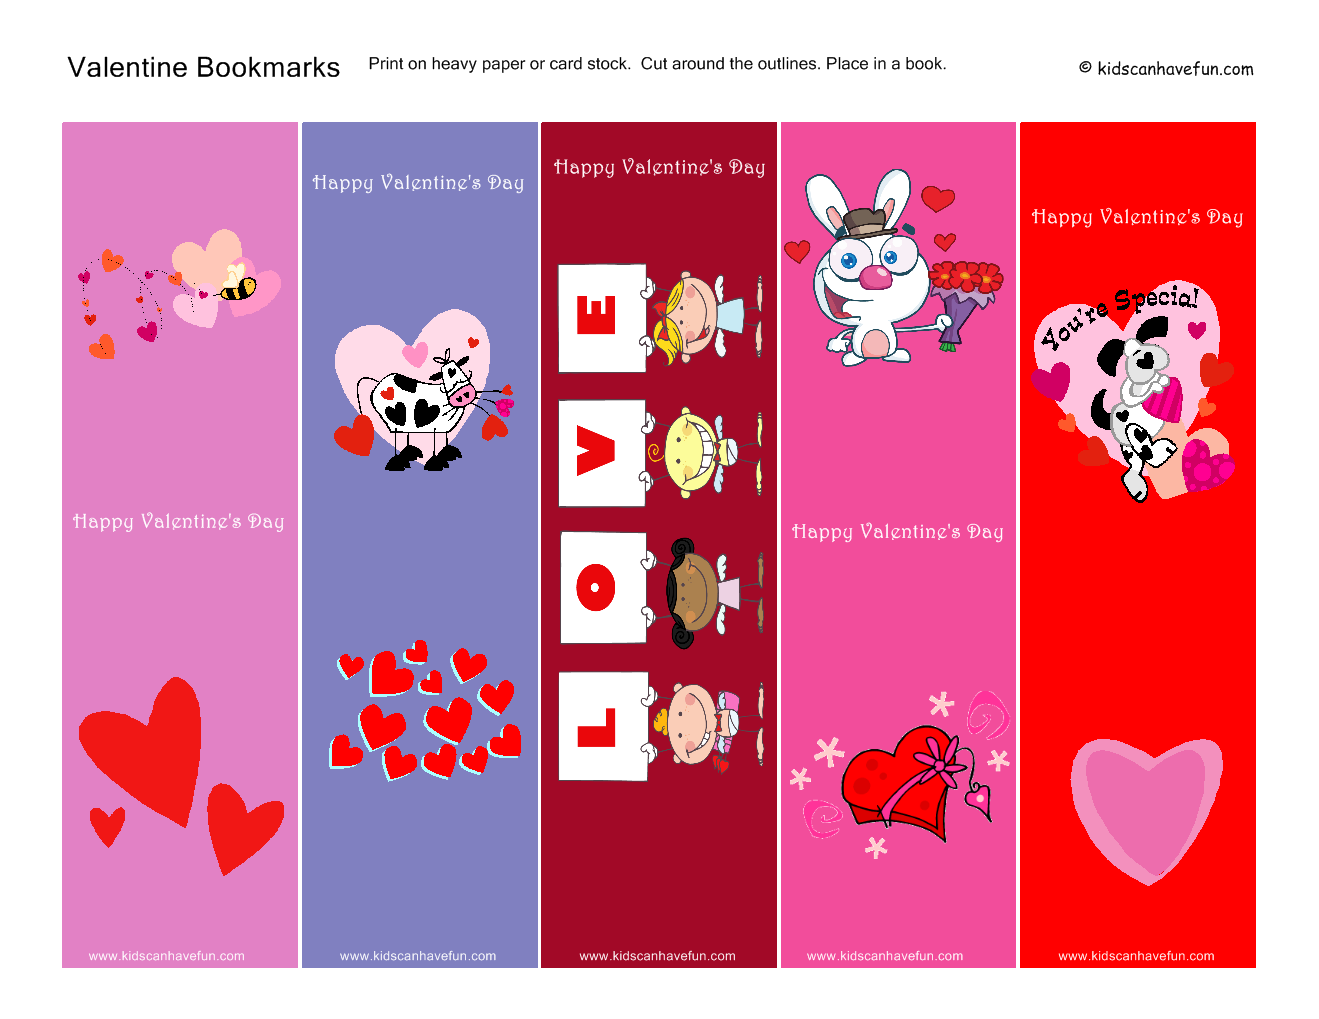 5 Images of Free Printable Valentine's Day Bookmarks